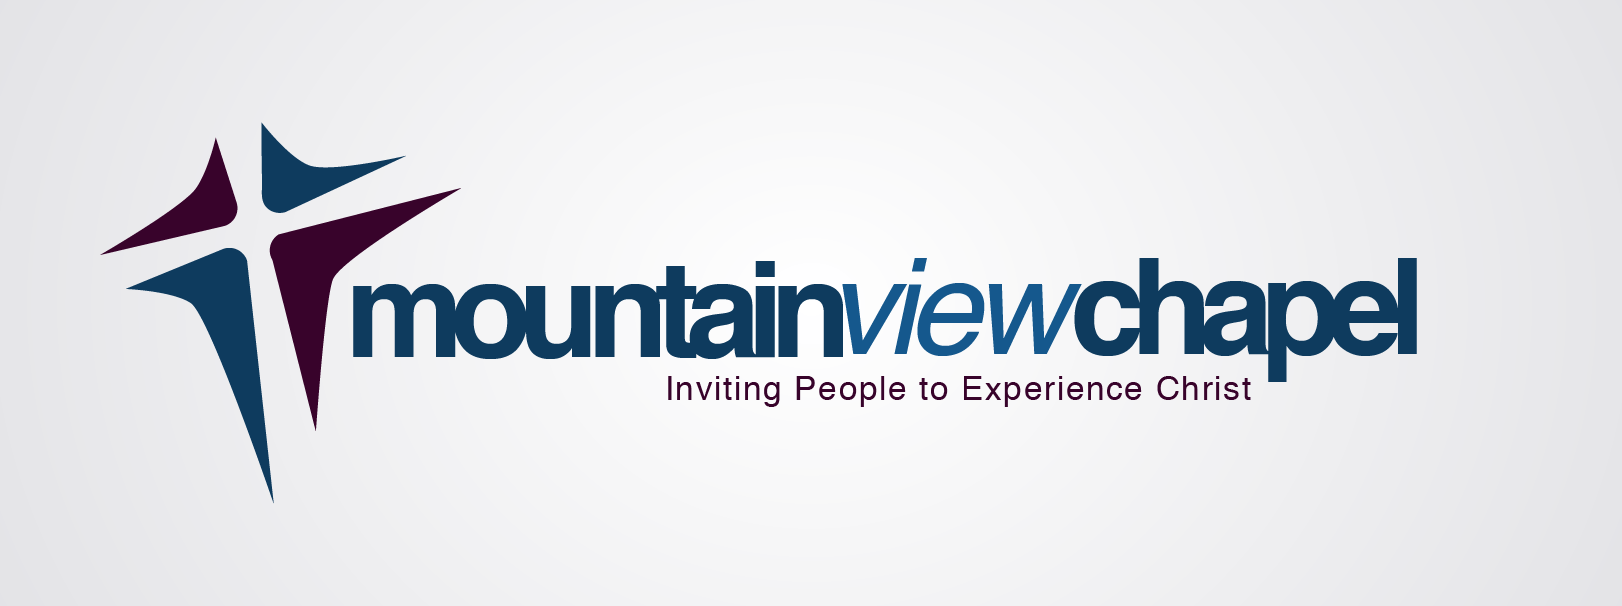 Inviting People to Experience Christ